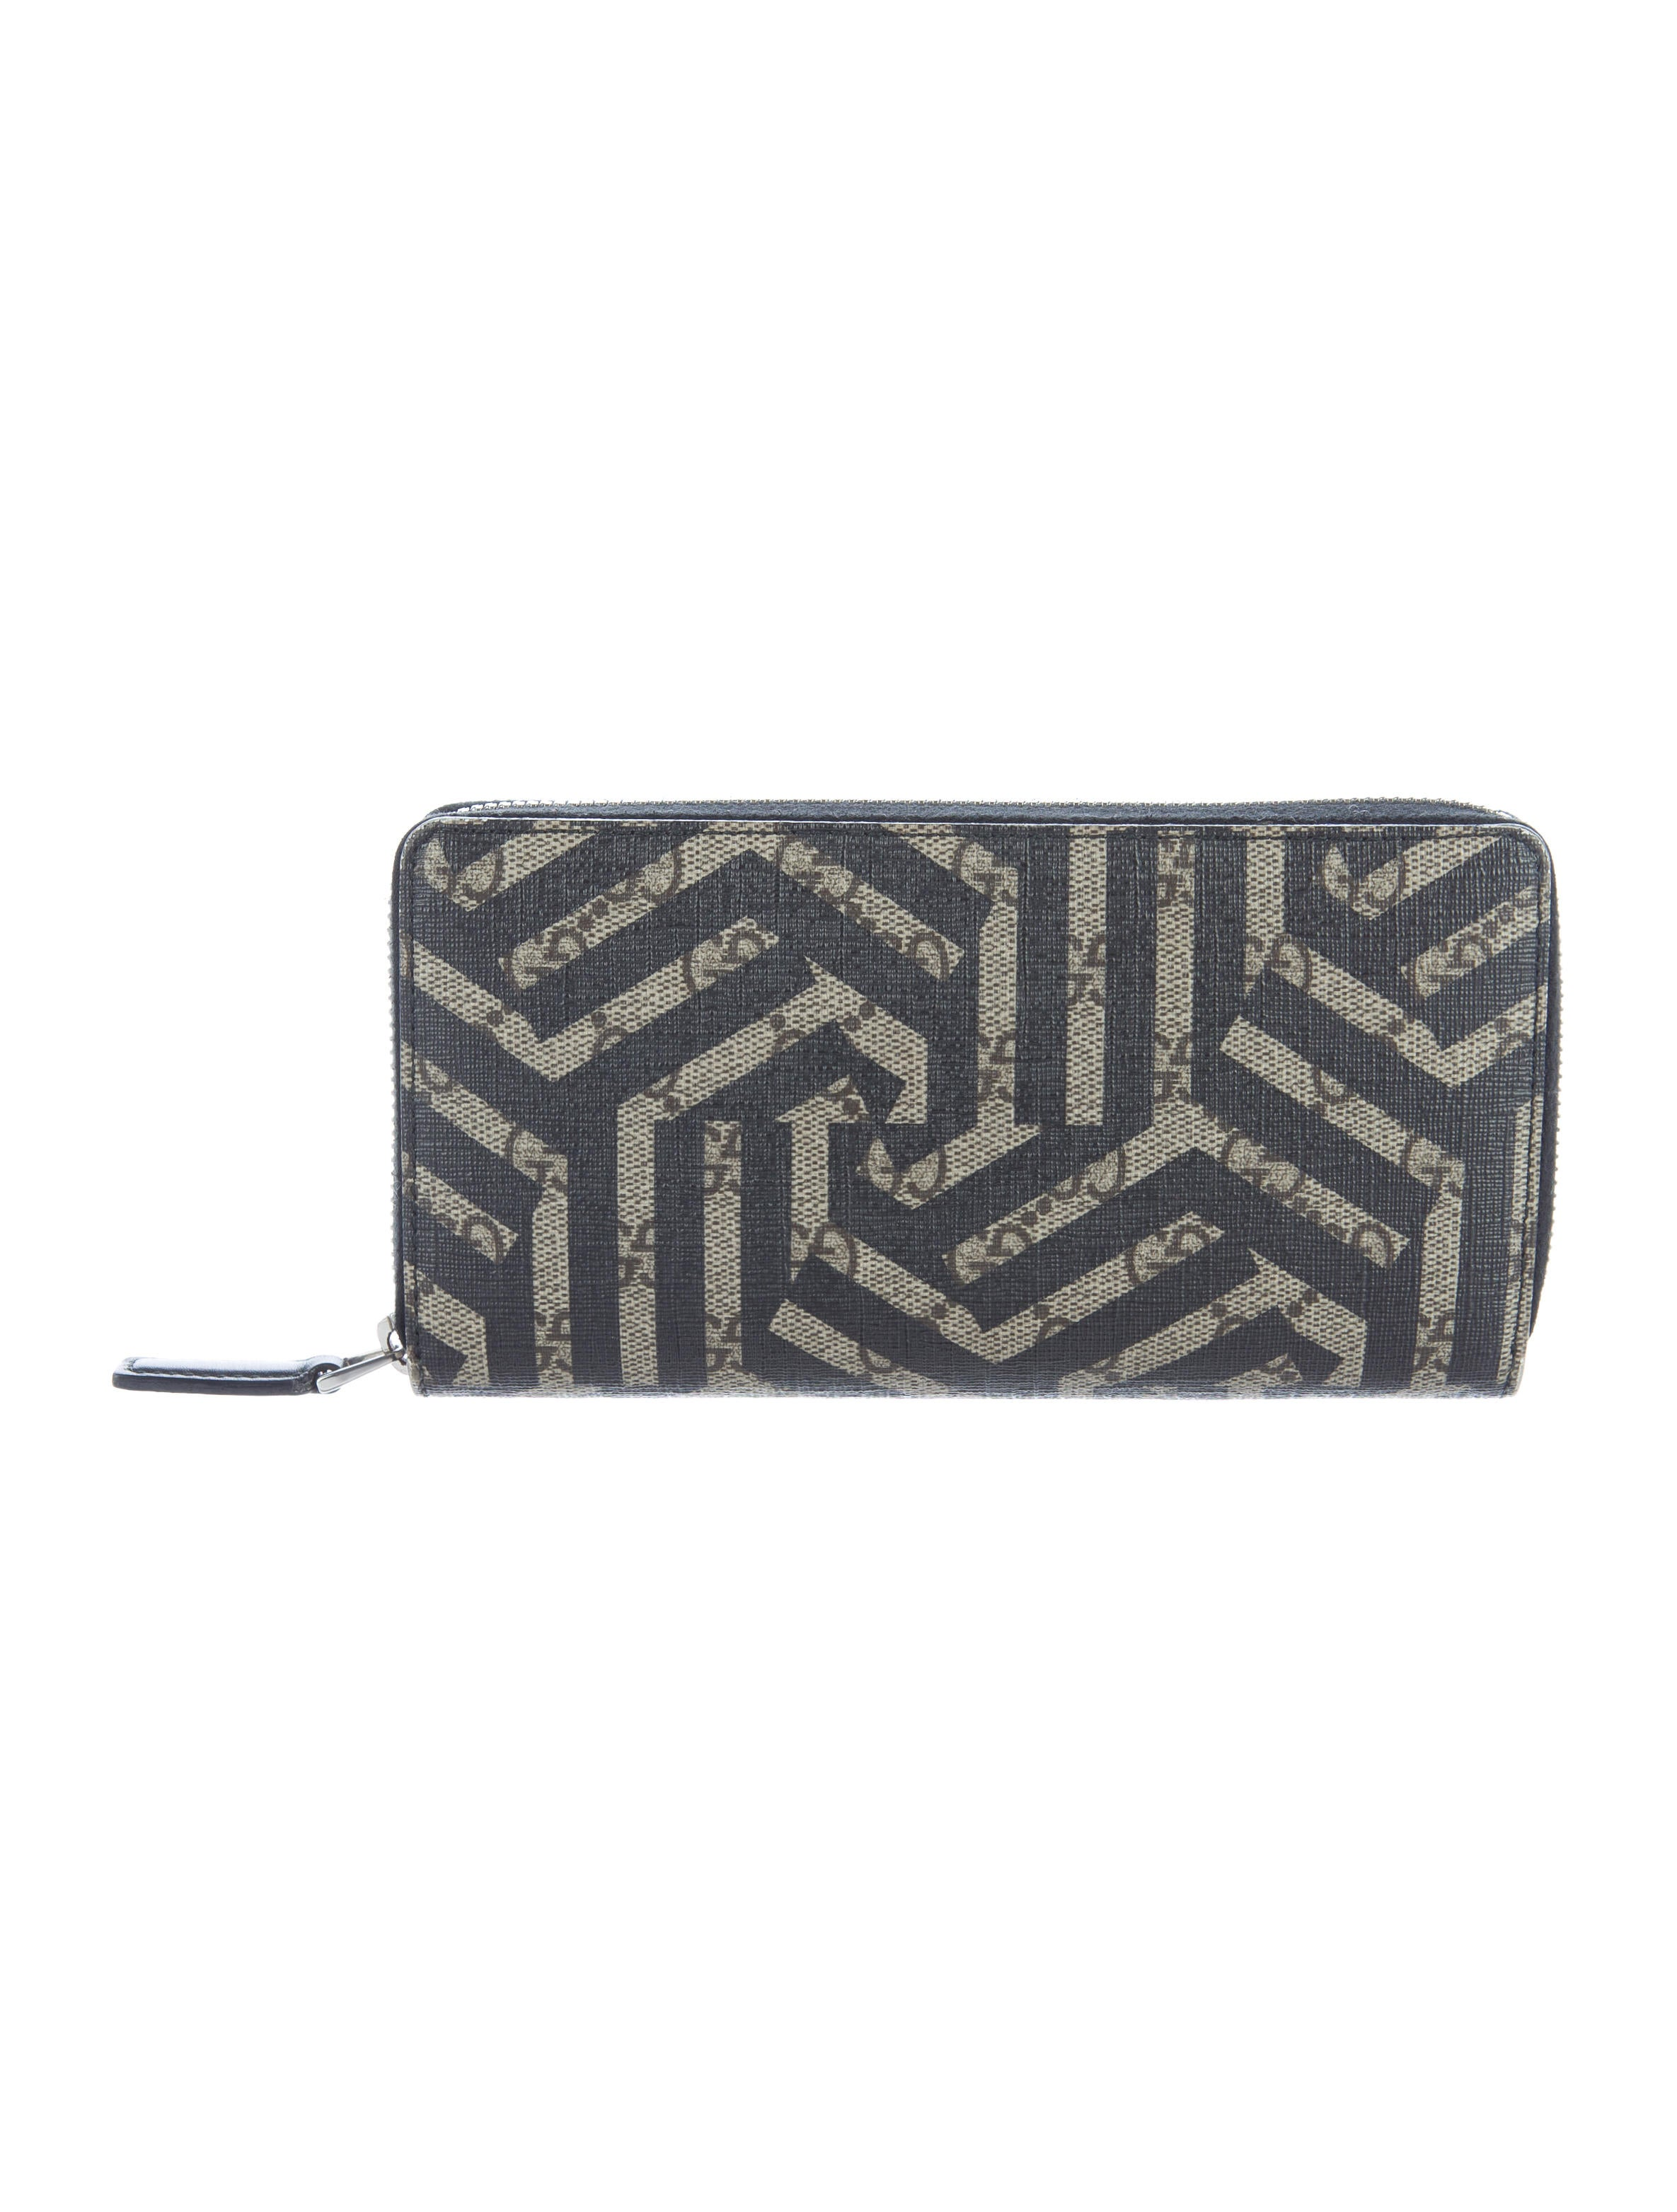 5af86b4bfd3 Gucci GG Caleido Zip Around Wallet - Accessories - GUC123745